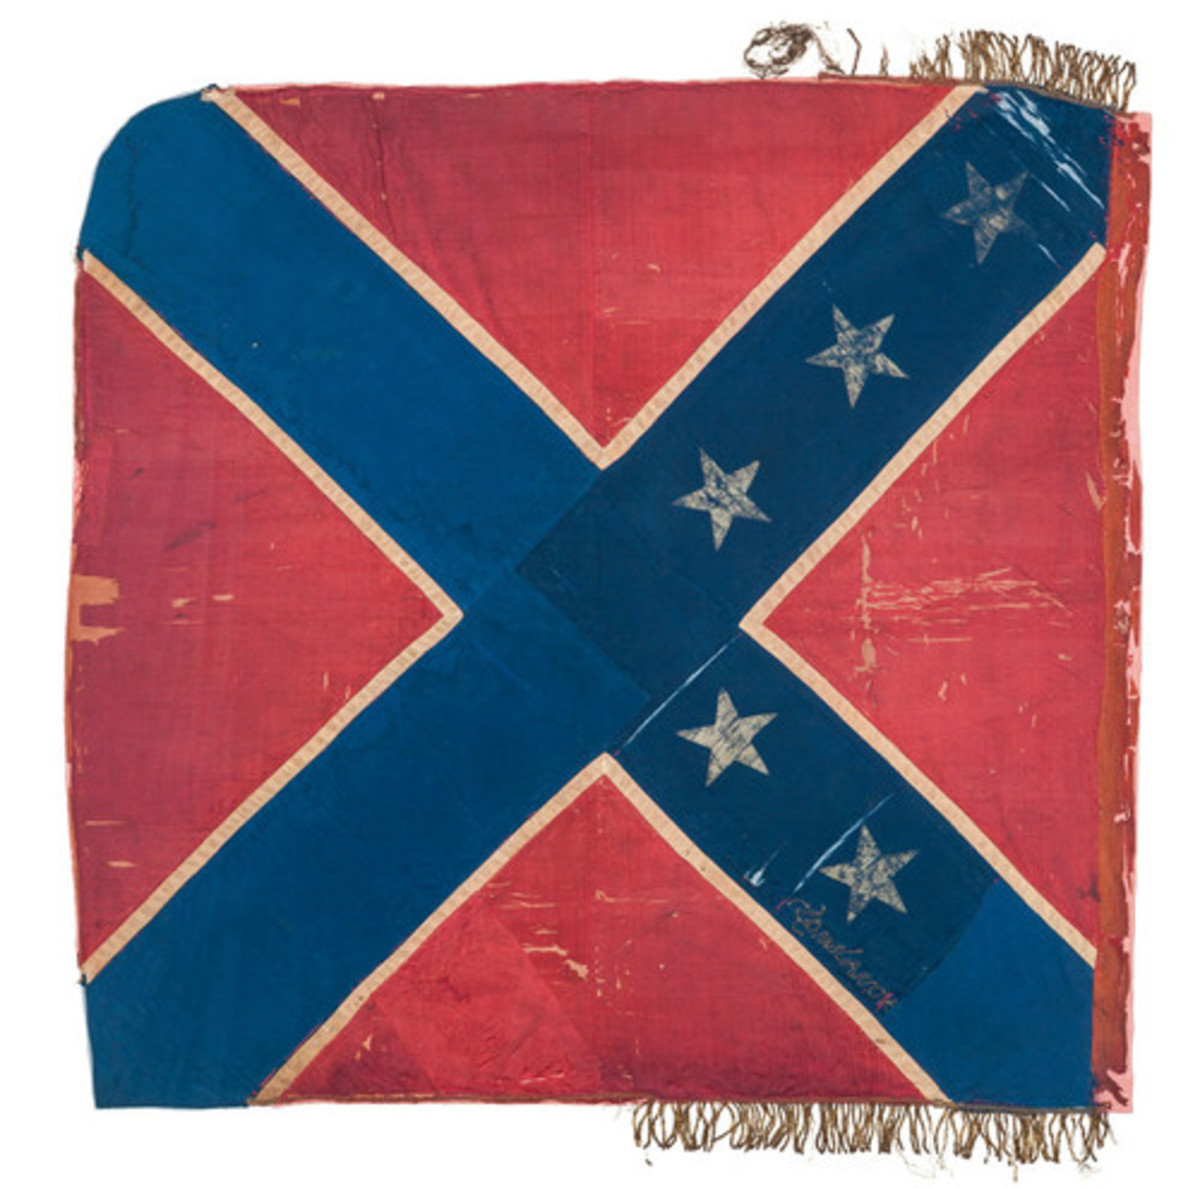 Confederate Flag sewn by Constance Cary in 1861 at the request of a Confederate congressional committee. Little did she know that one day this symbol would be reviled and considered racist patronage by a united nation.